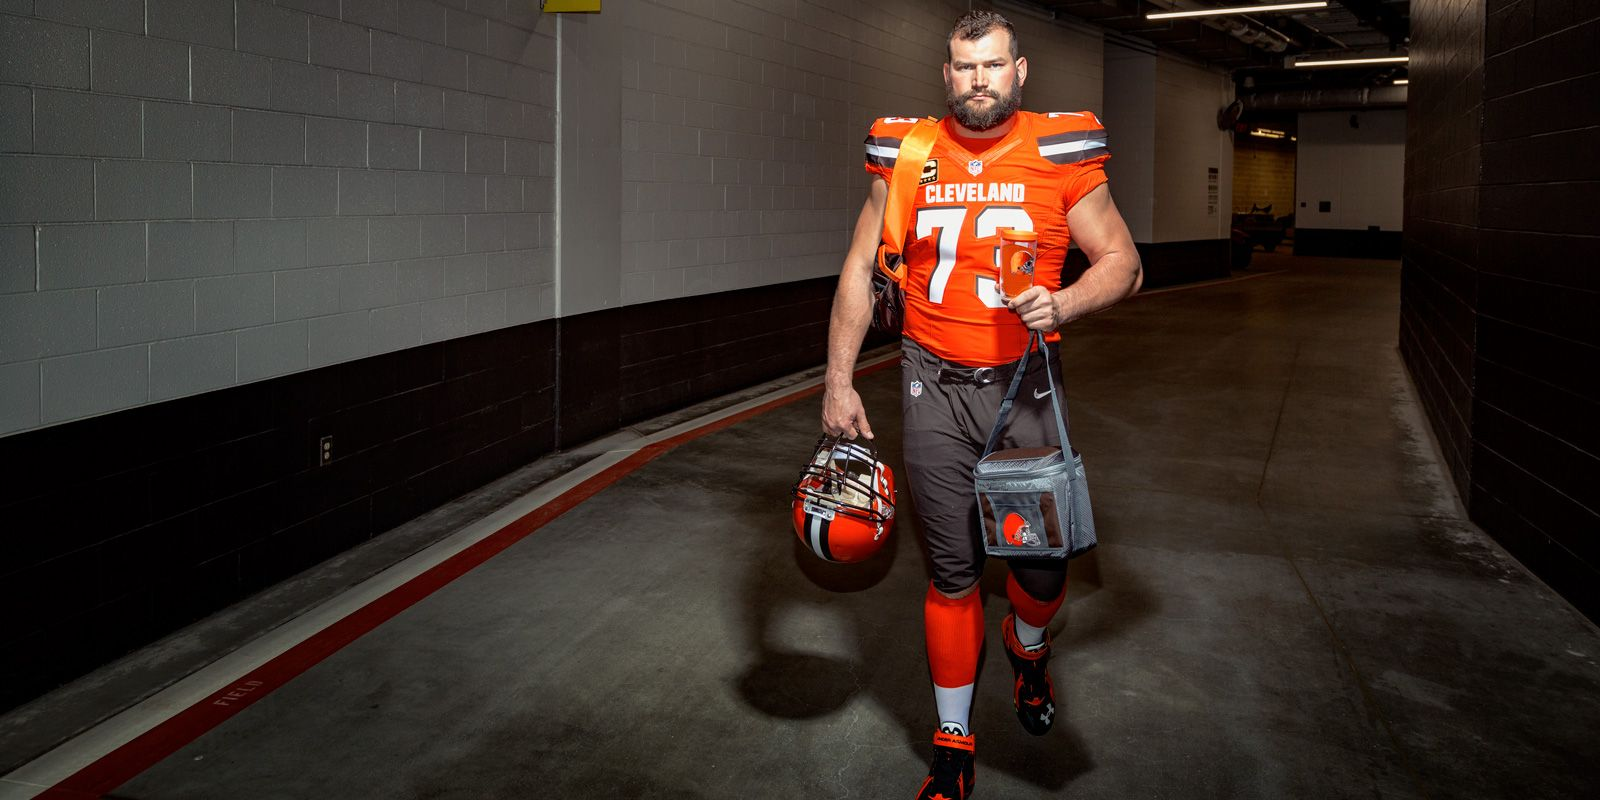 Cleveland Browns Joe Thomas 9 684 straight shifts in the Factory